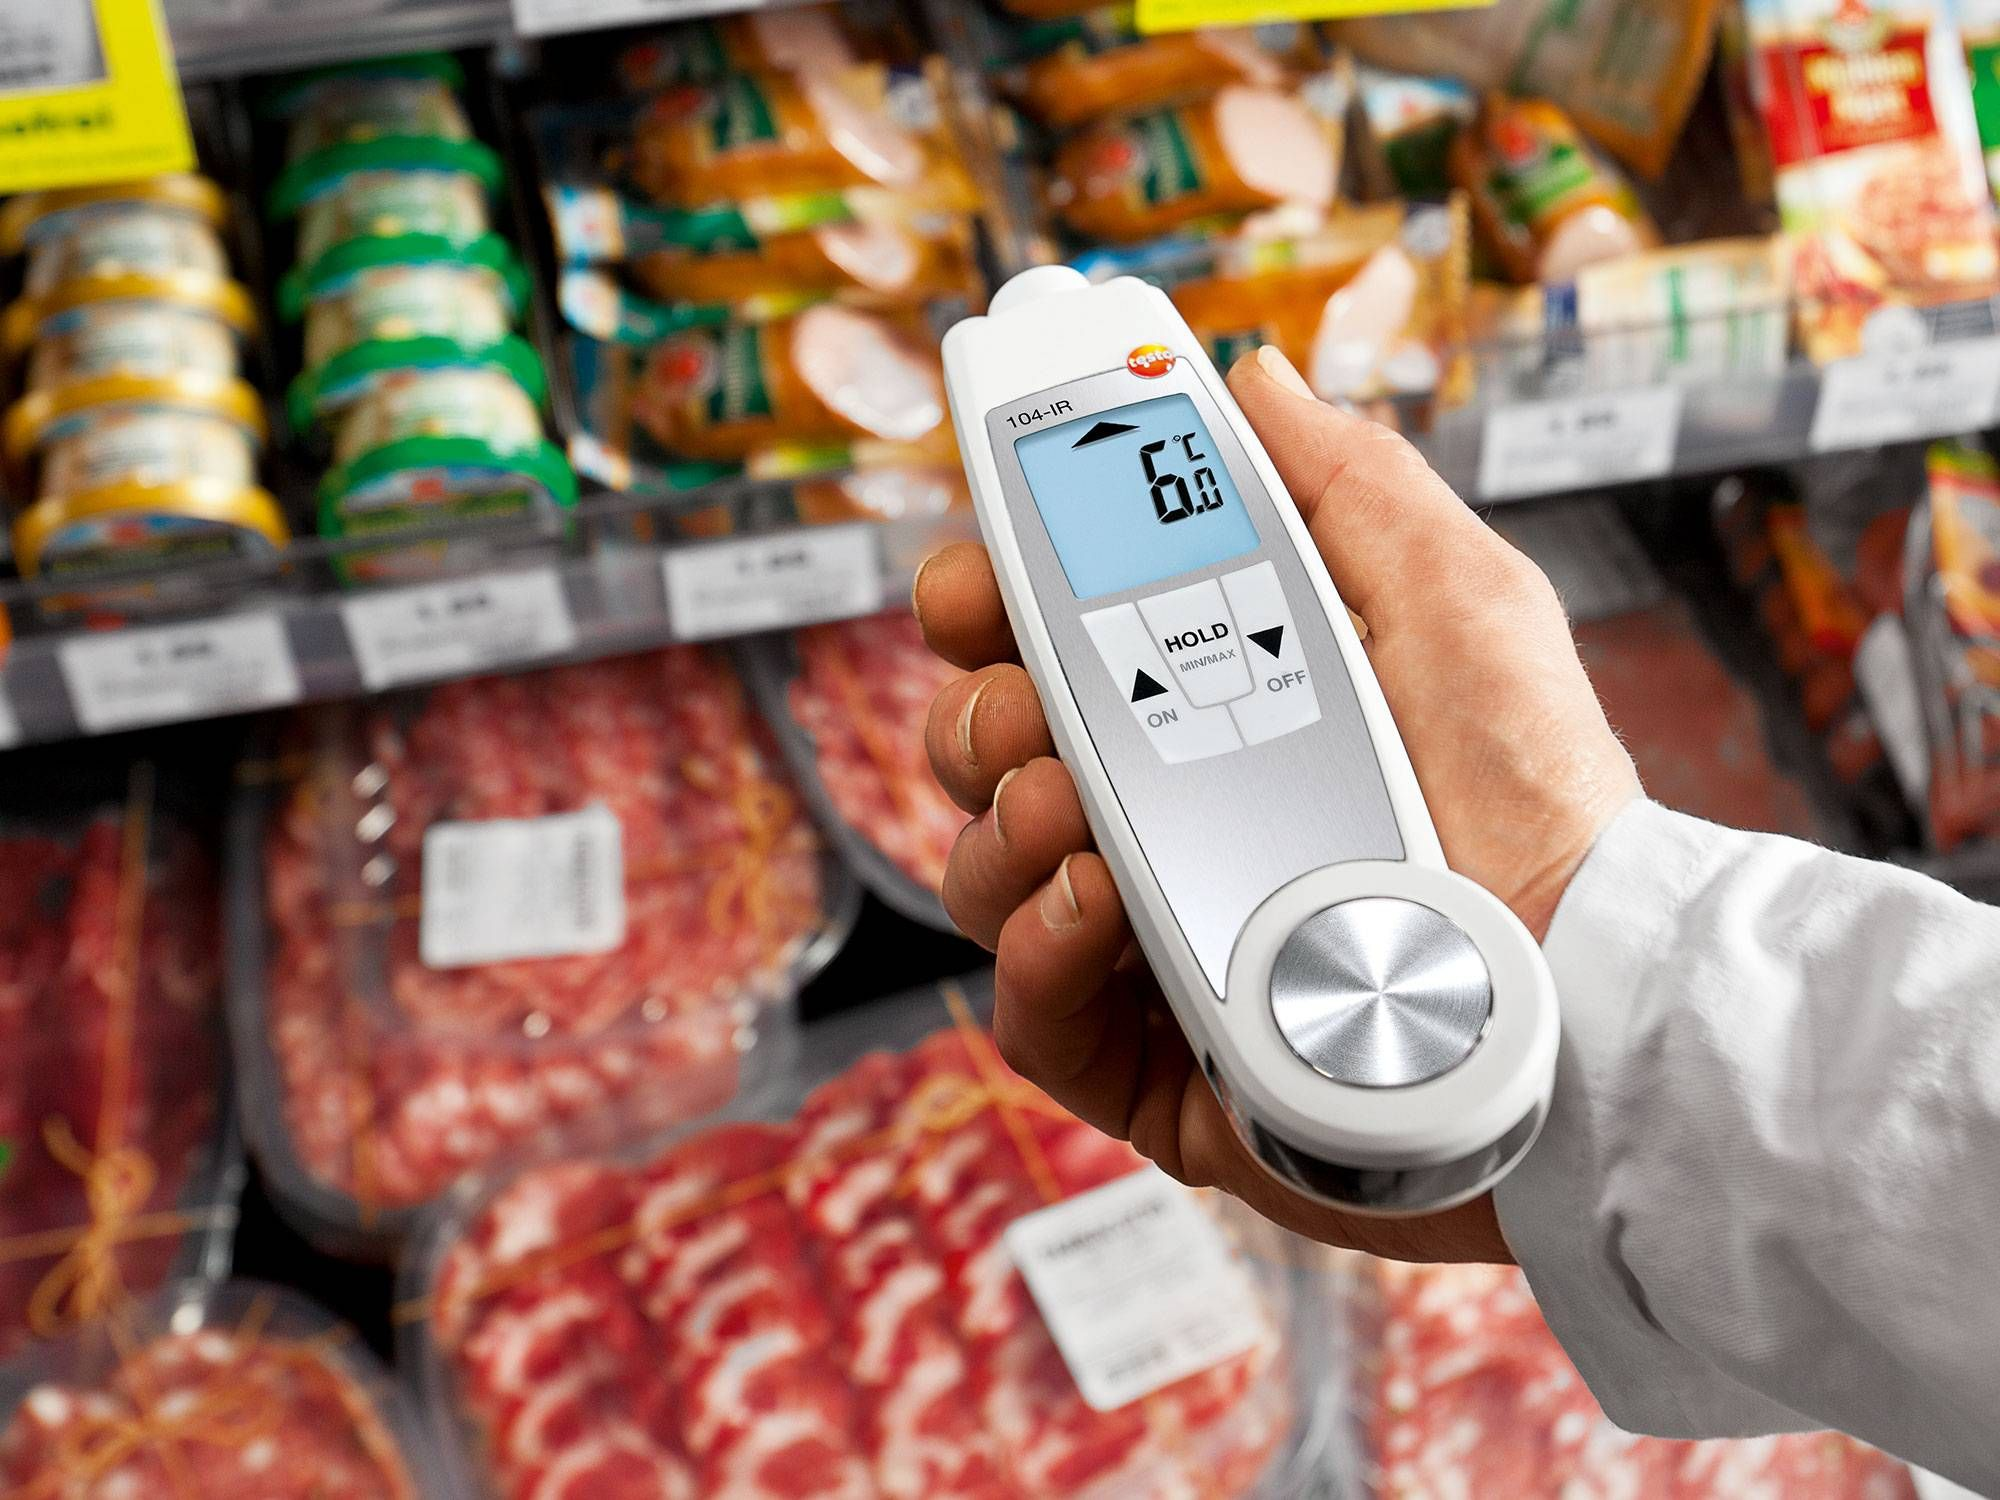 Measuring food temperatures